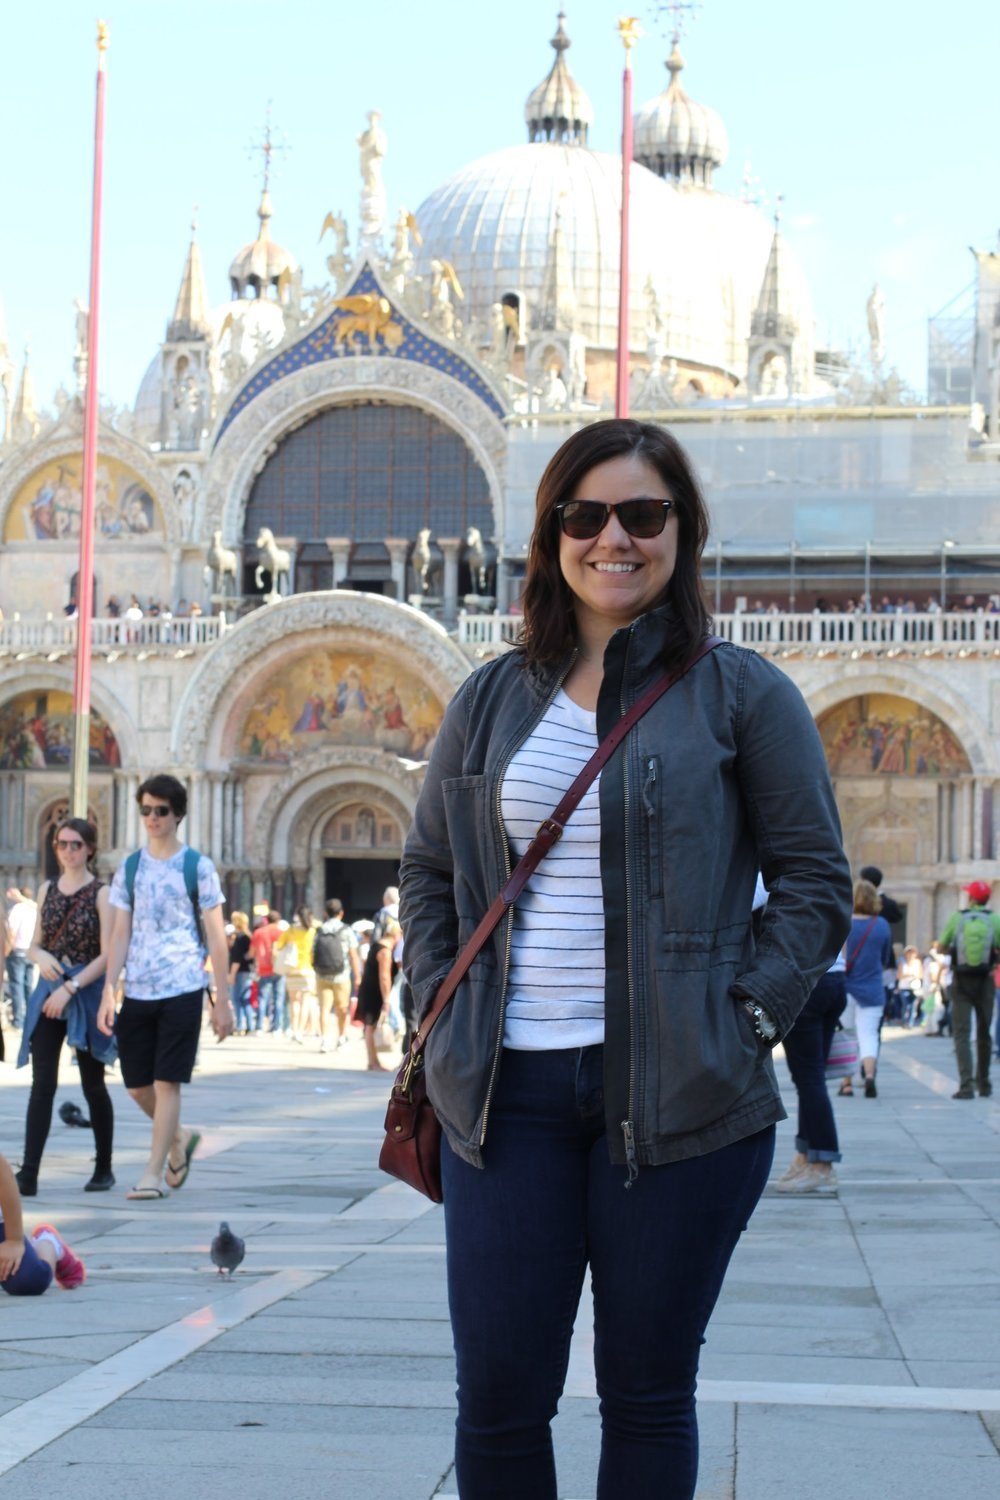 Pictured: me, not a prostitute, in Piazza San Marco.